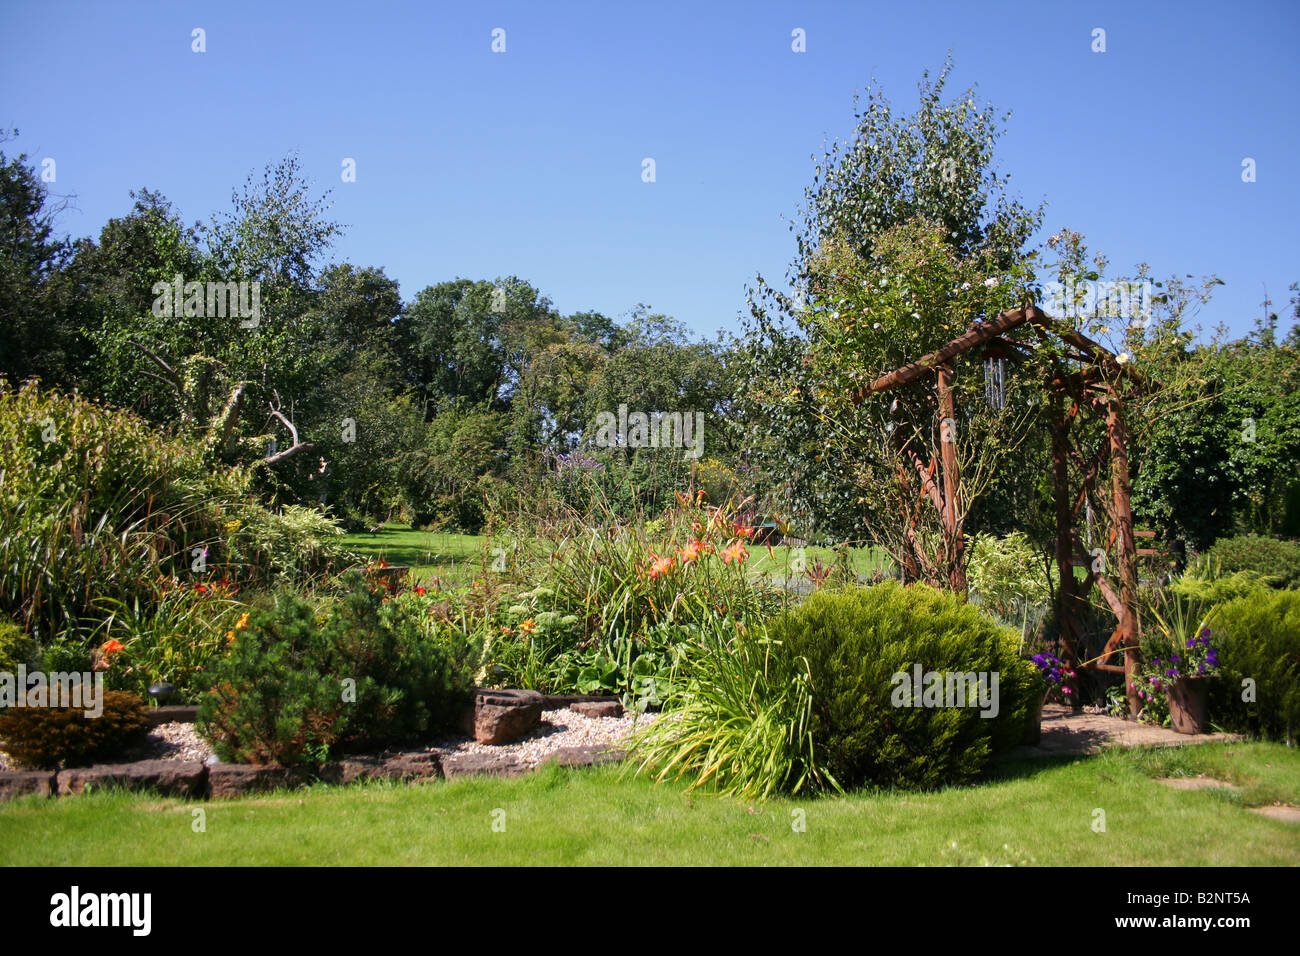 An English country garden in summer - Stock Image